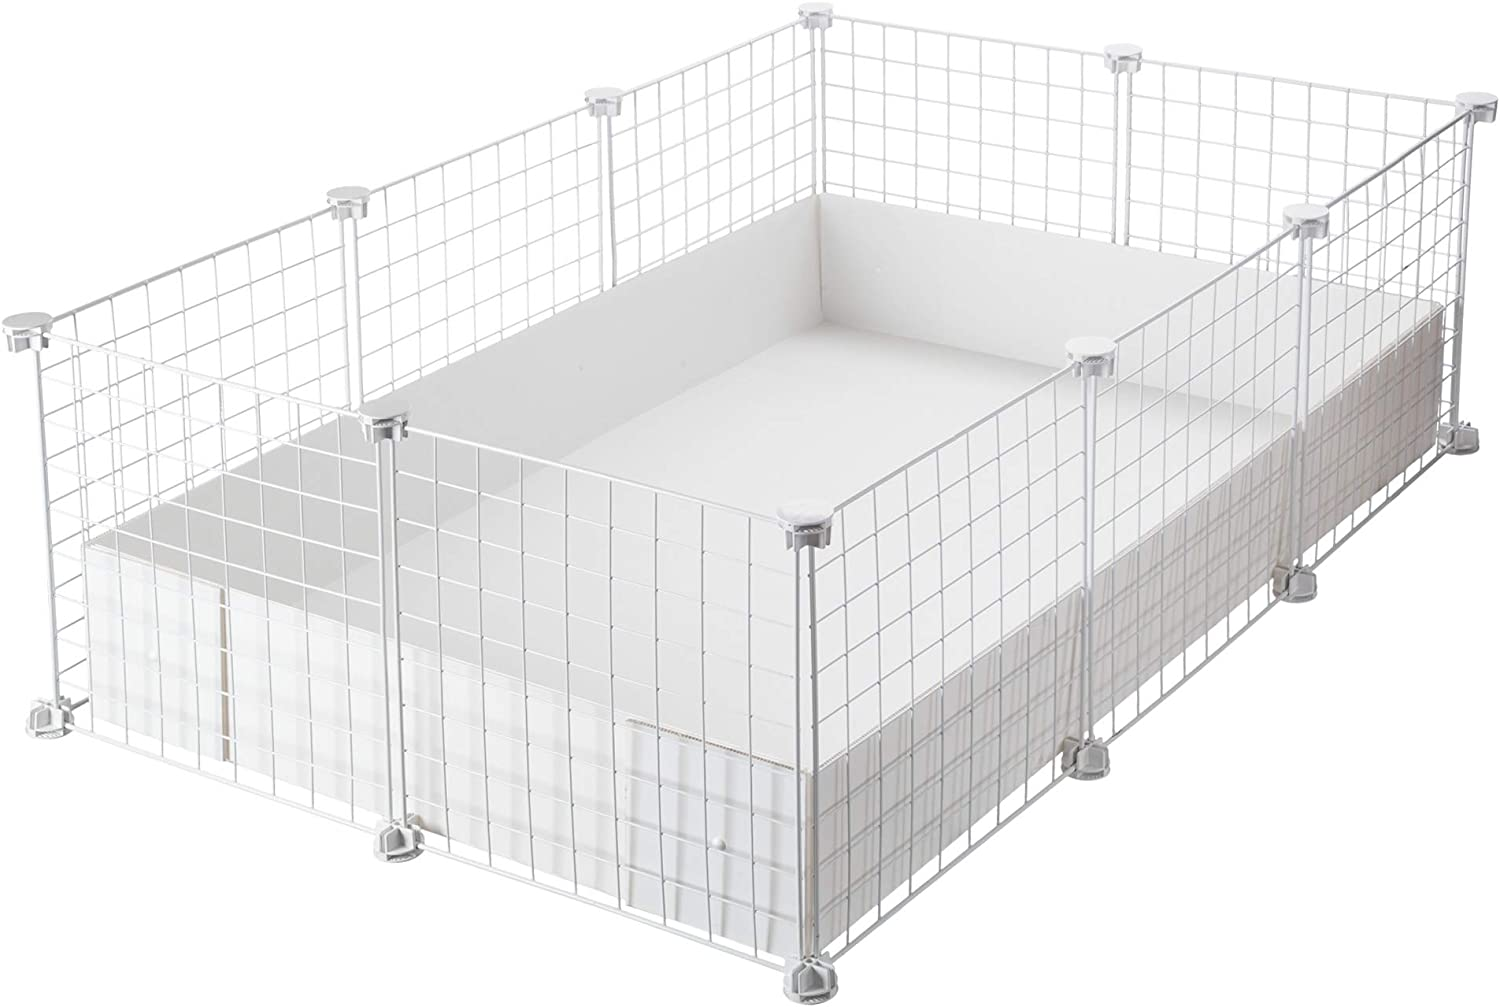 BIG C/&C cage 2X4 panels in Black CagesCubes + Black Coroplast Base for guinea pigs